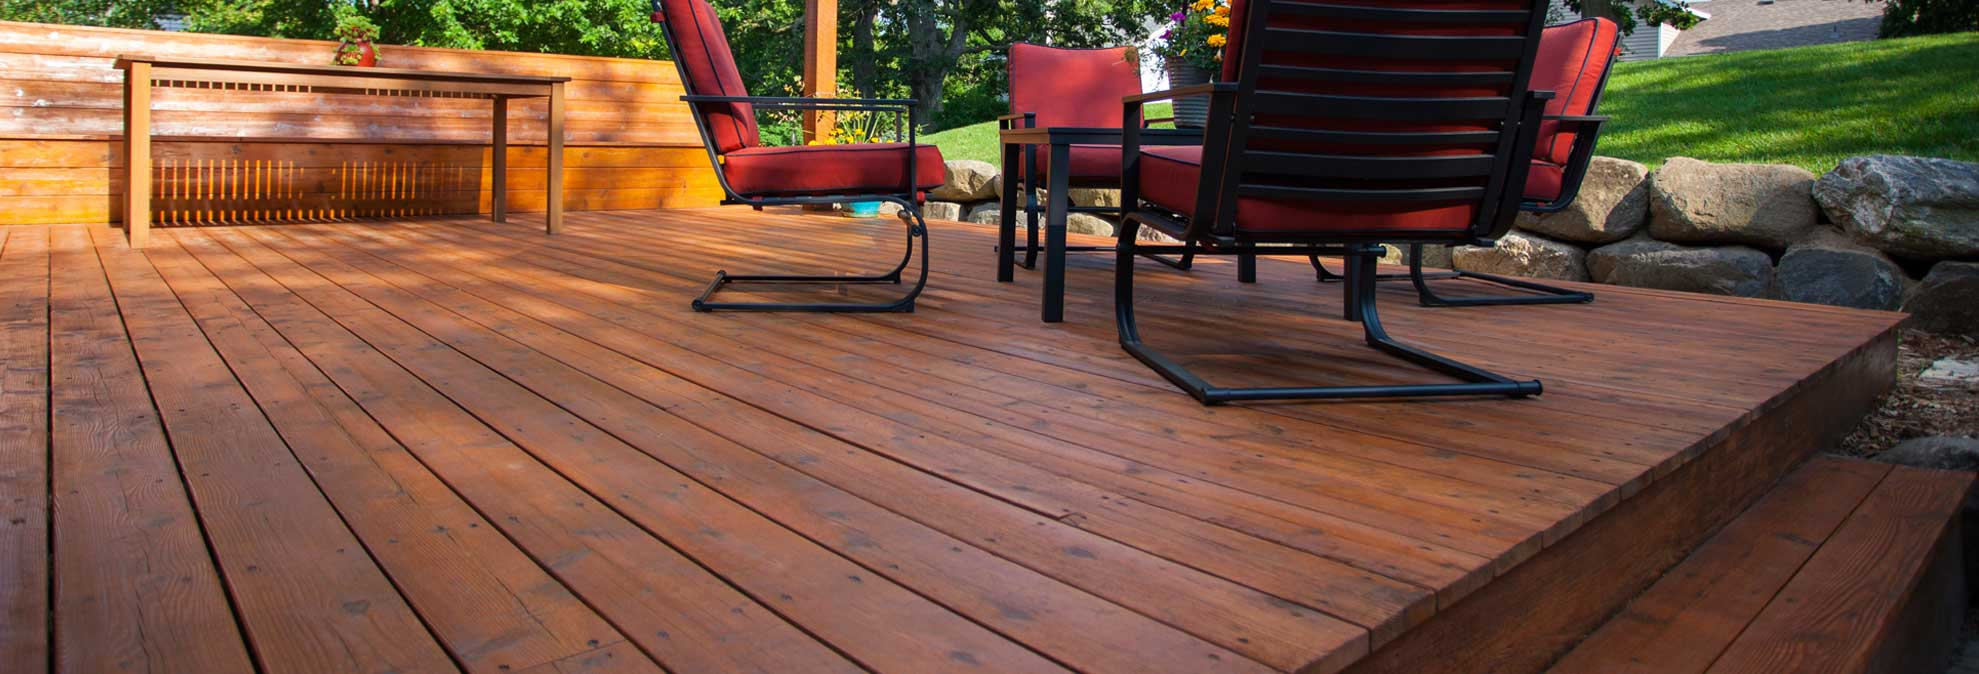 Best decking buying guide consumer reports for What is the best wood for decking